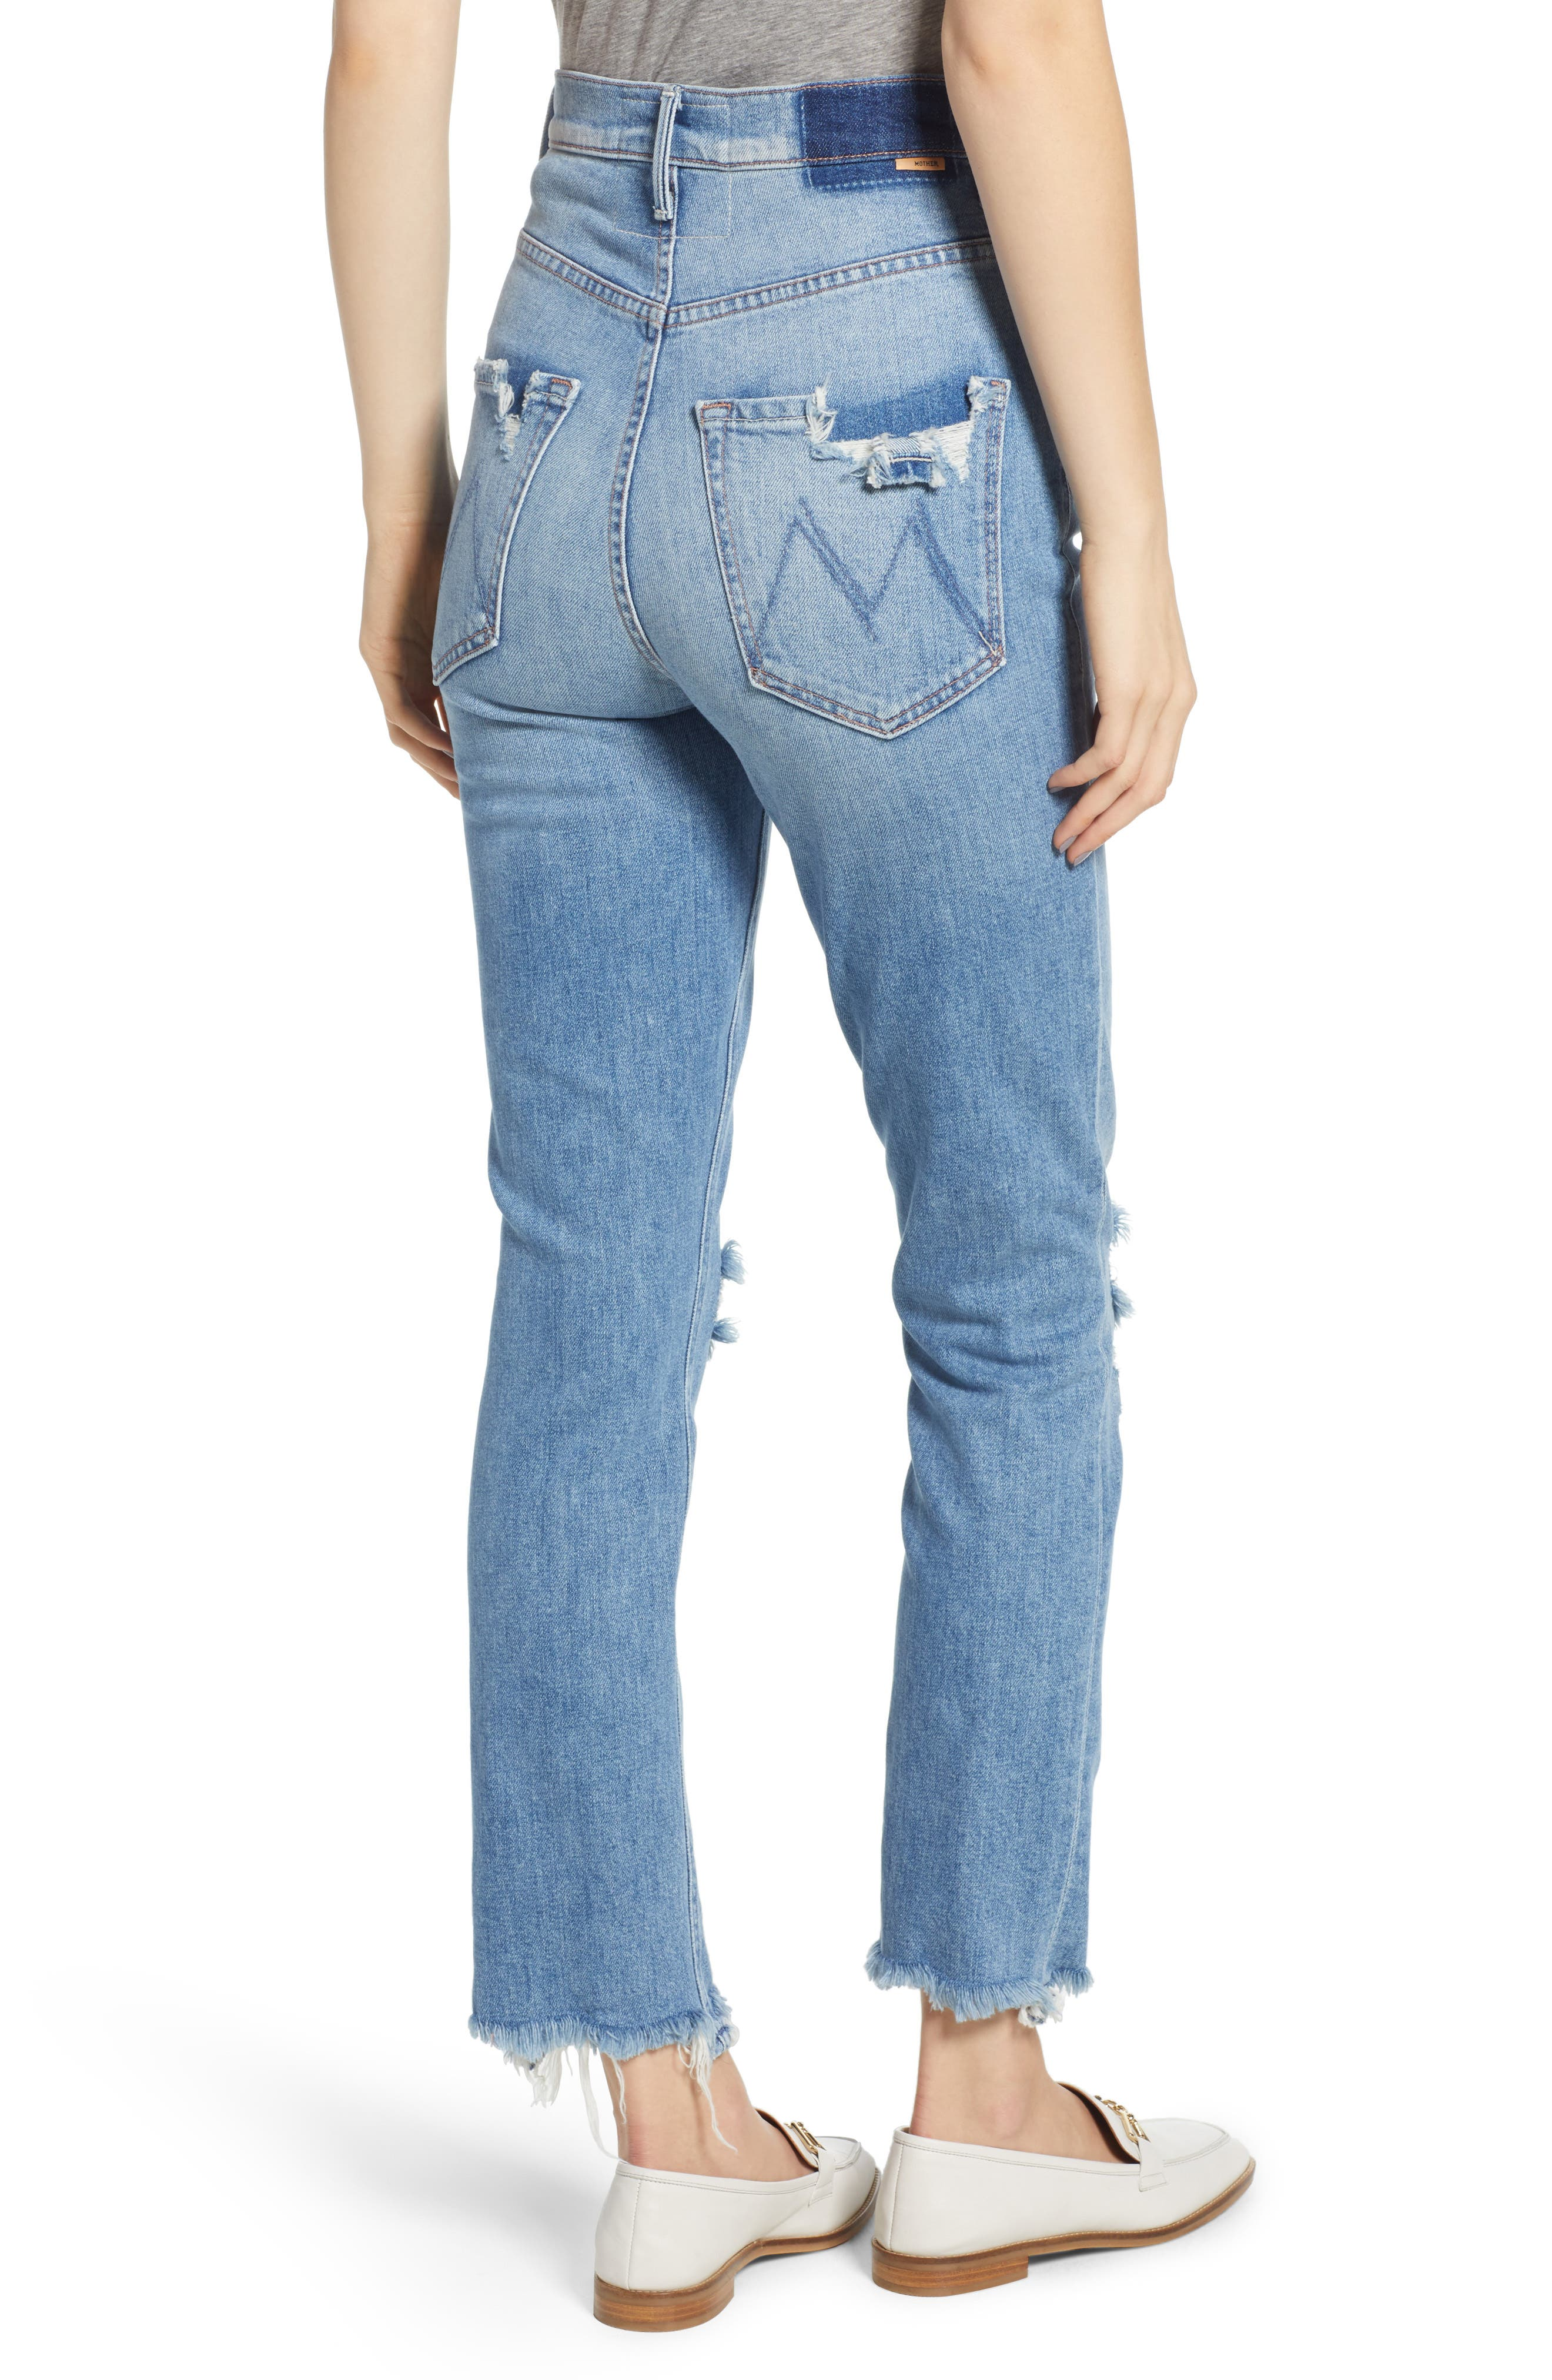 Dazzler Shift Step Waistband Jeans,                             Alternate thumbnail 2, color,                             452